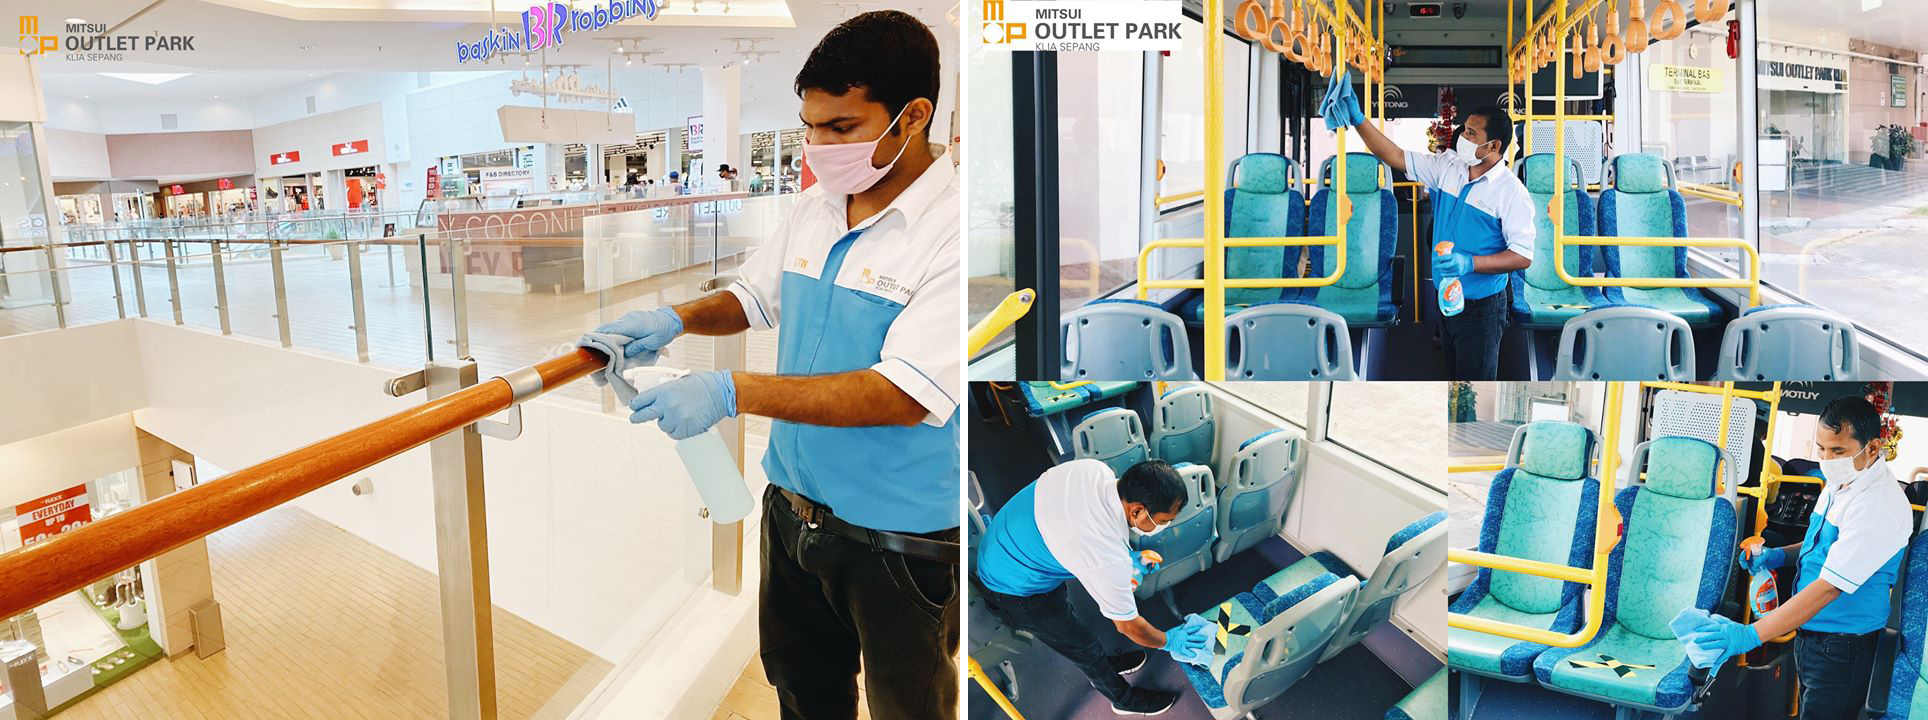 Regular sanitisation exercises carried out by workers to maintain cleanliness and hygiene of the premises as well as the shuttle bus facilities.